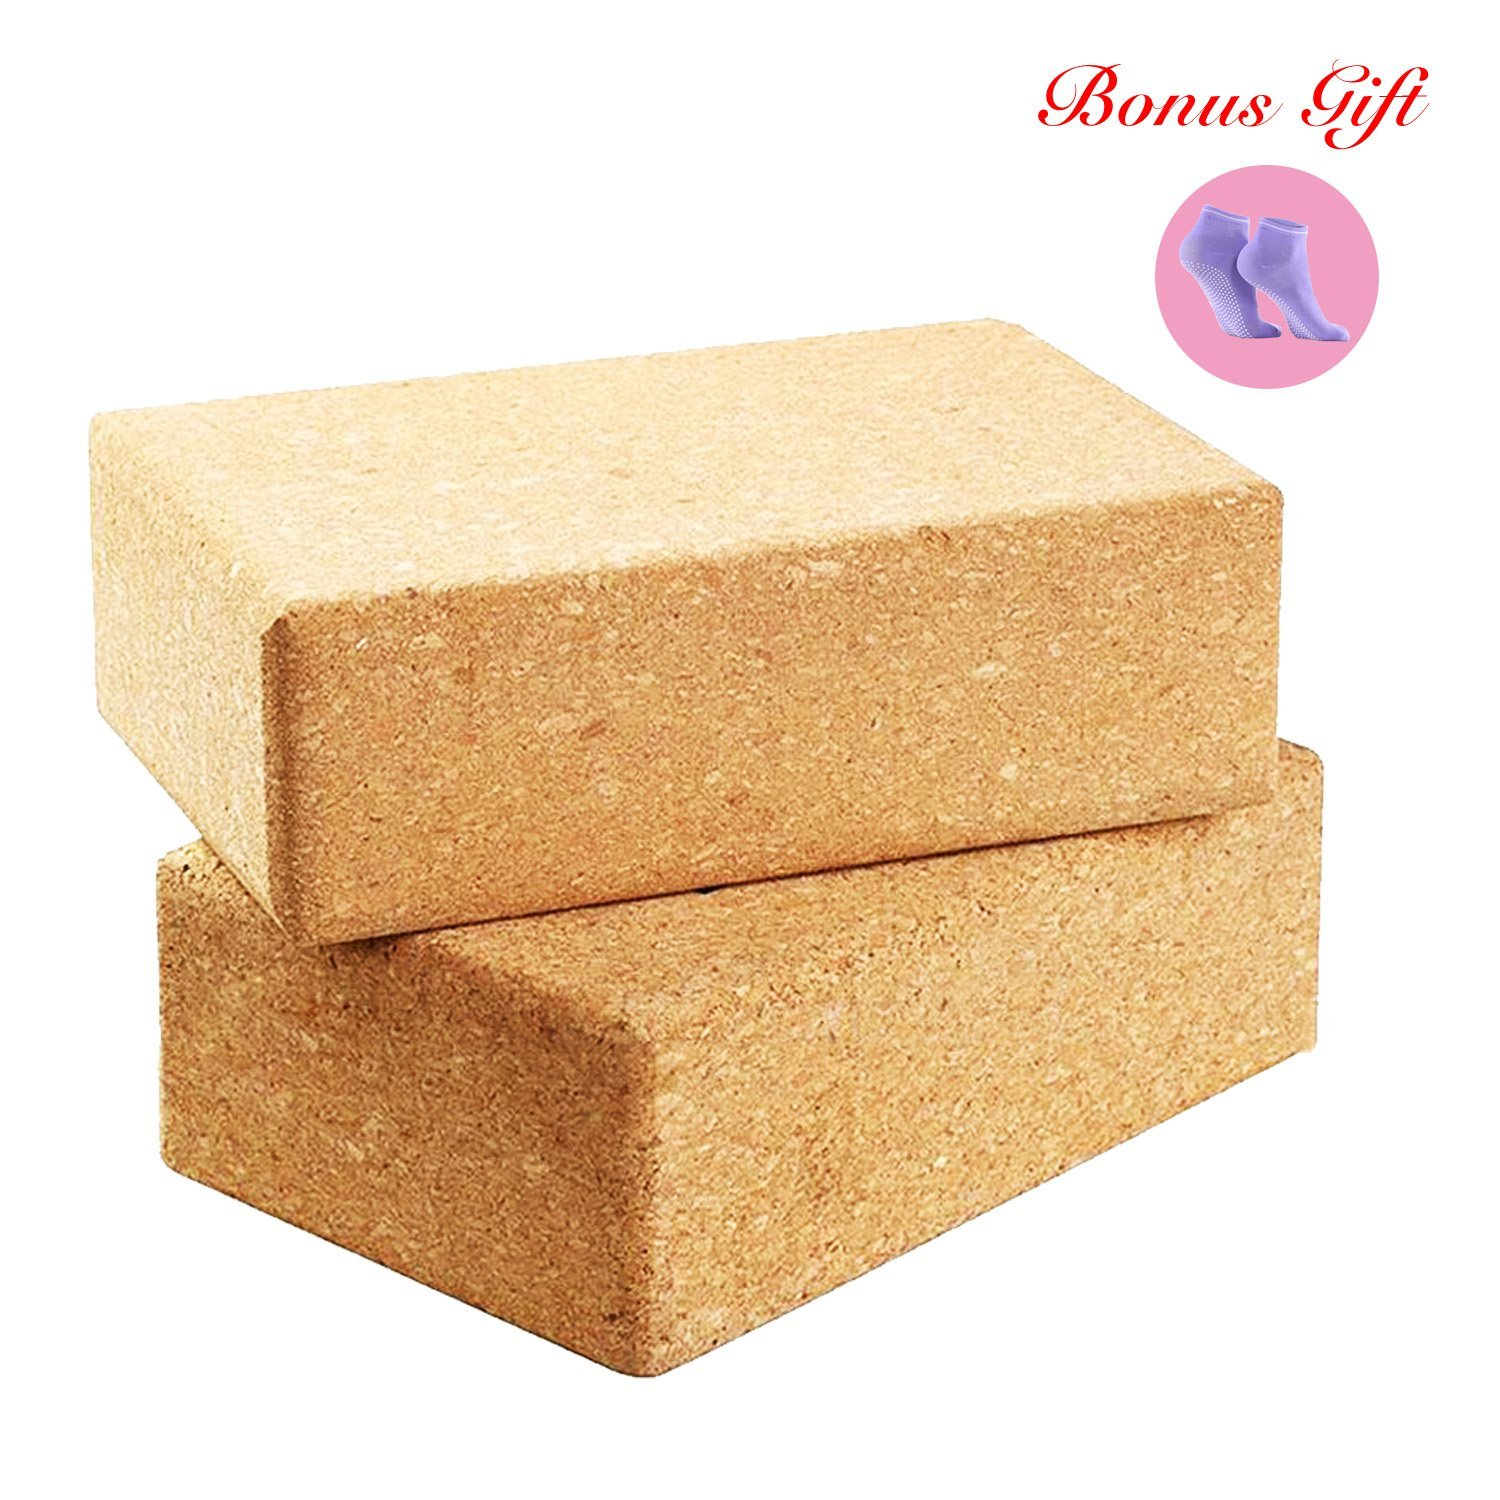 Cork Yoga Block Brick Pilates Exercise Block Brick Soft Durable Slip-Resistant Non-Absorbent Odor-Free Moisture-Proof Yoga Nice Aid